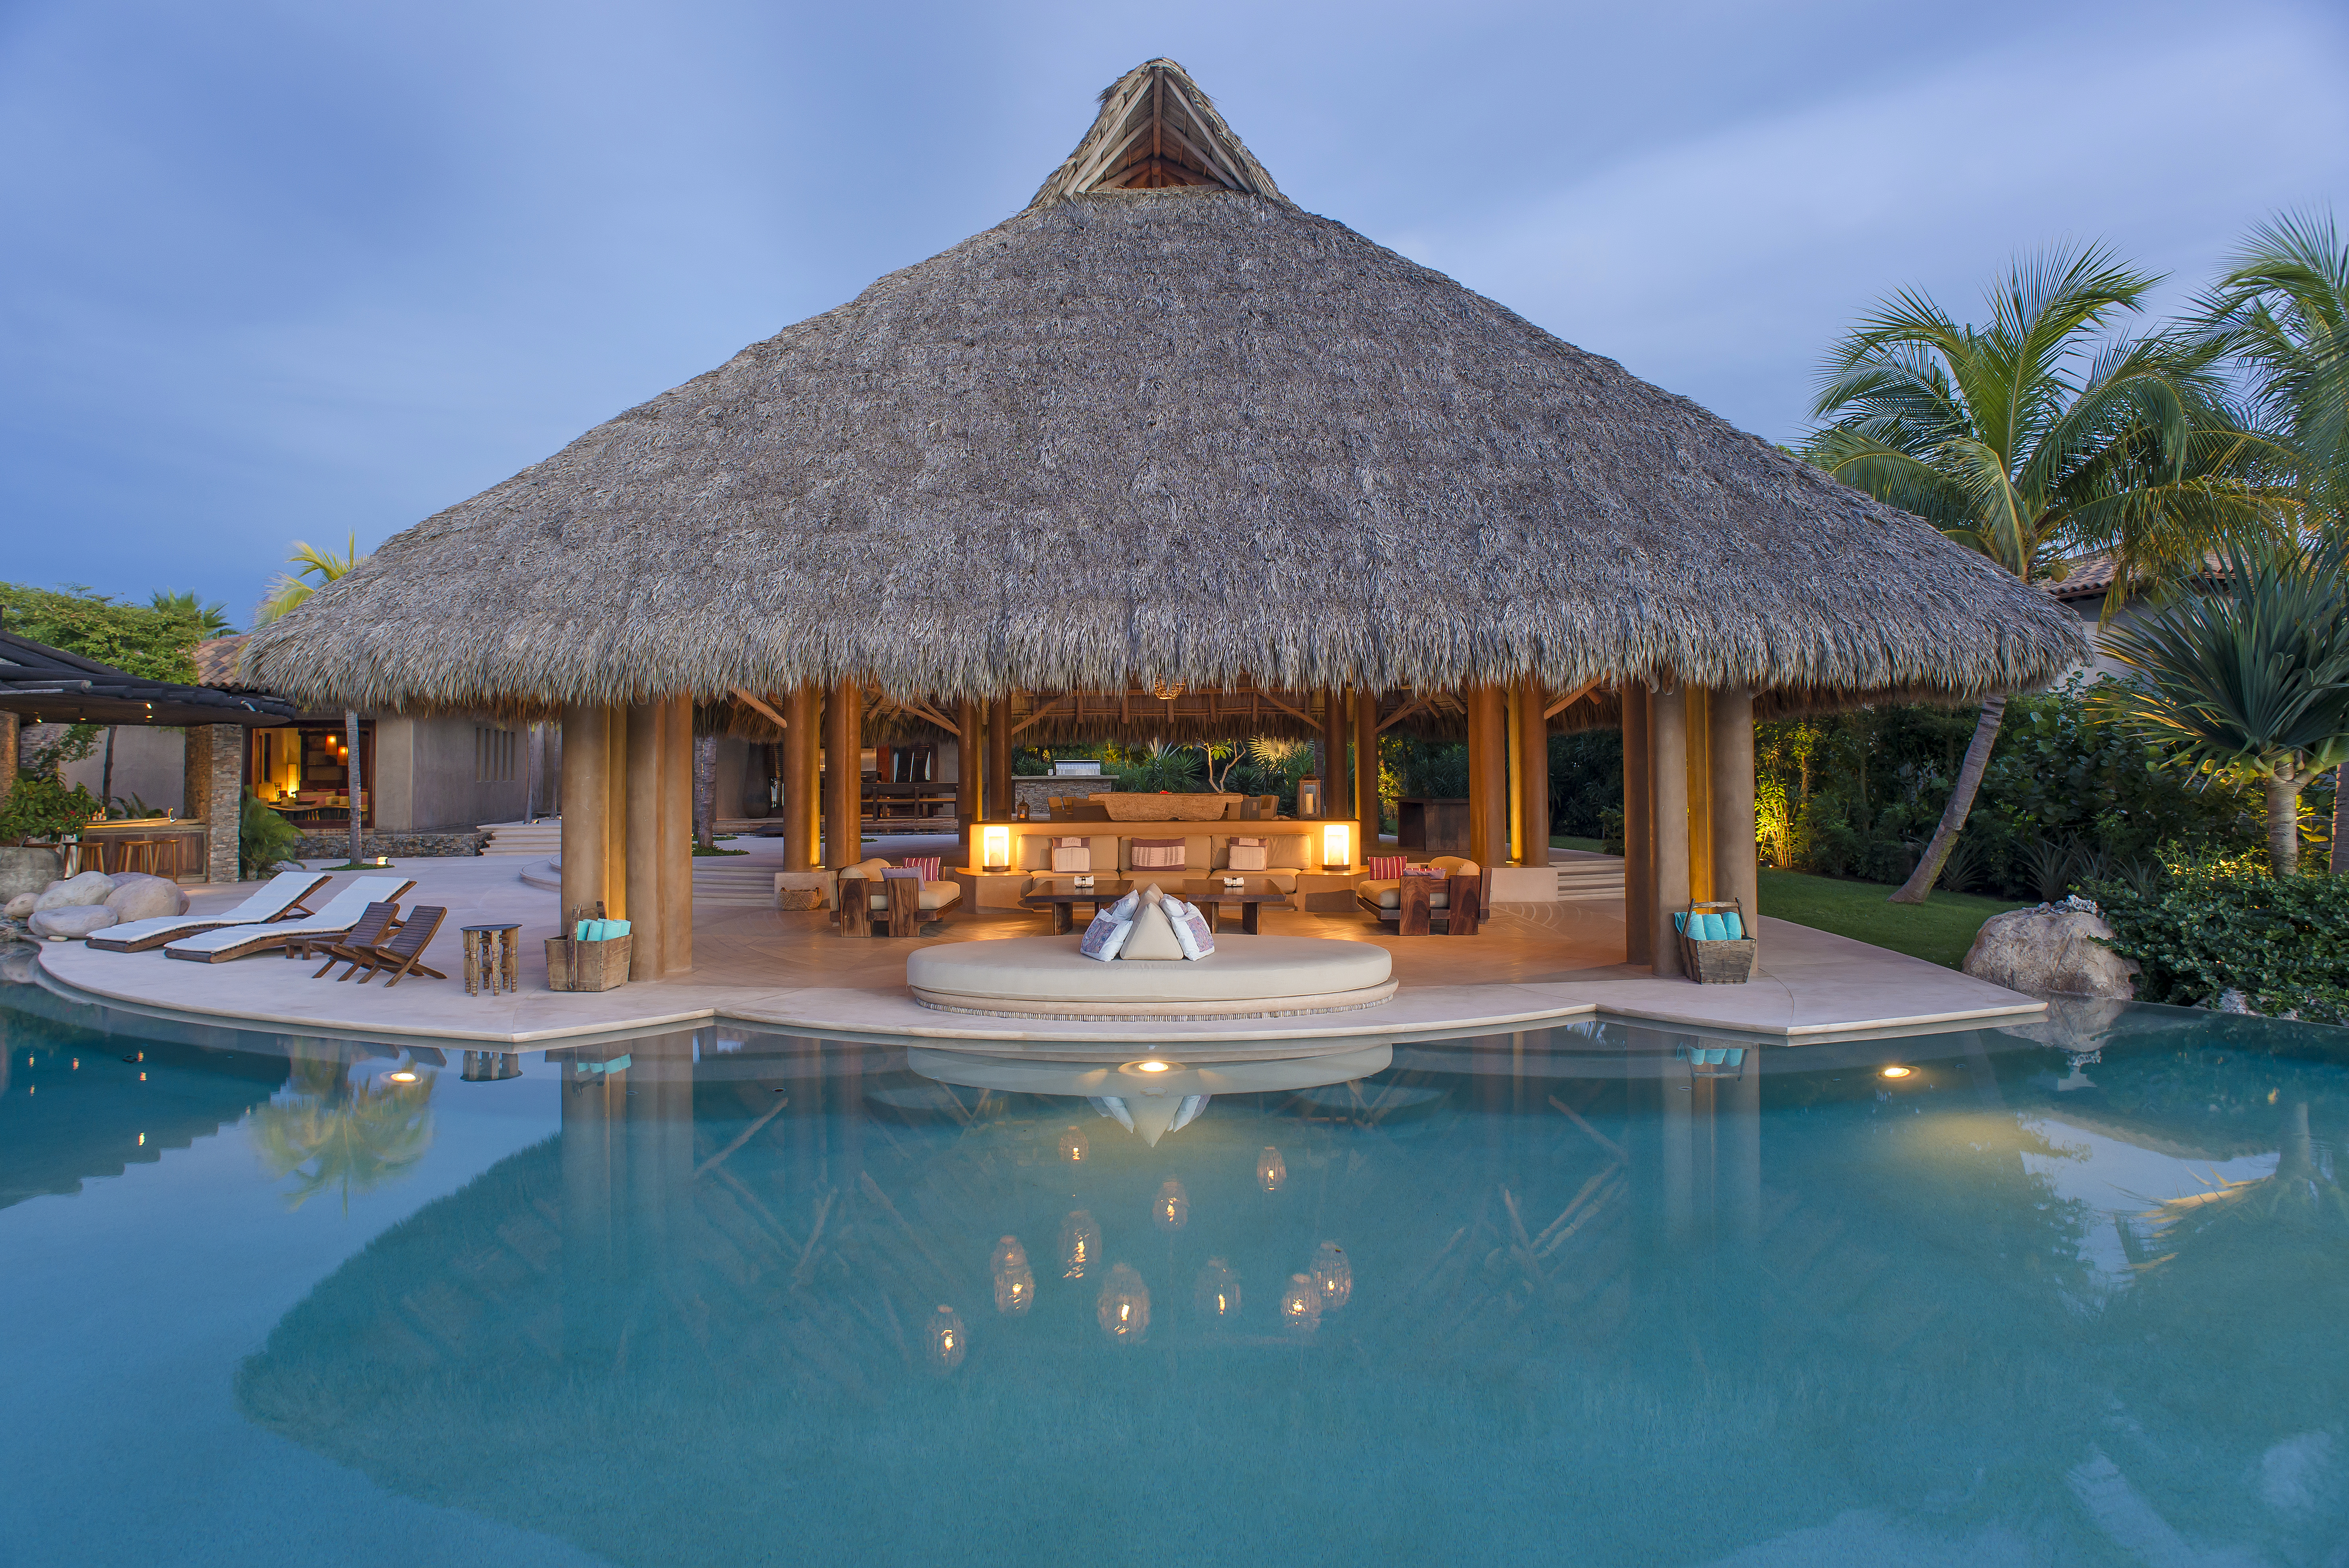 Pool_Palapa_night